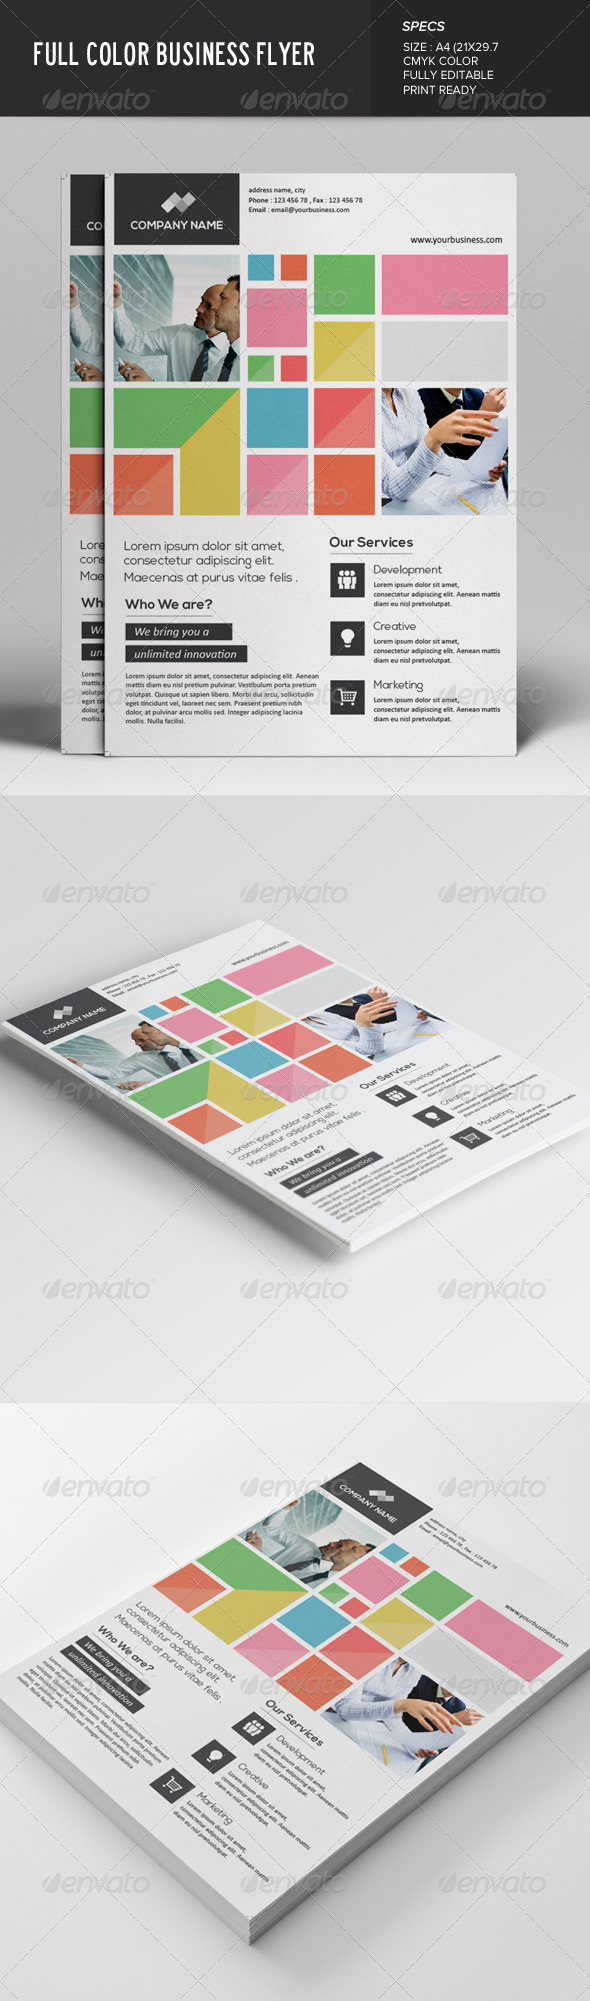 GraphicRiver Full Color Business Flyer 7622106